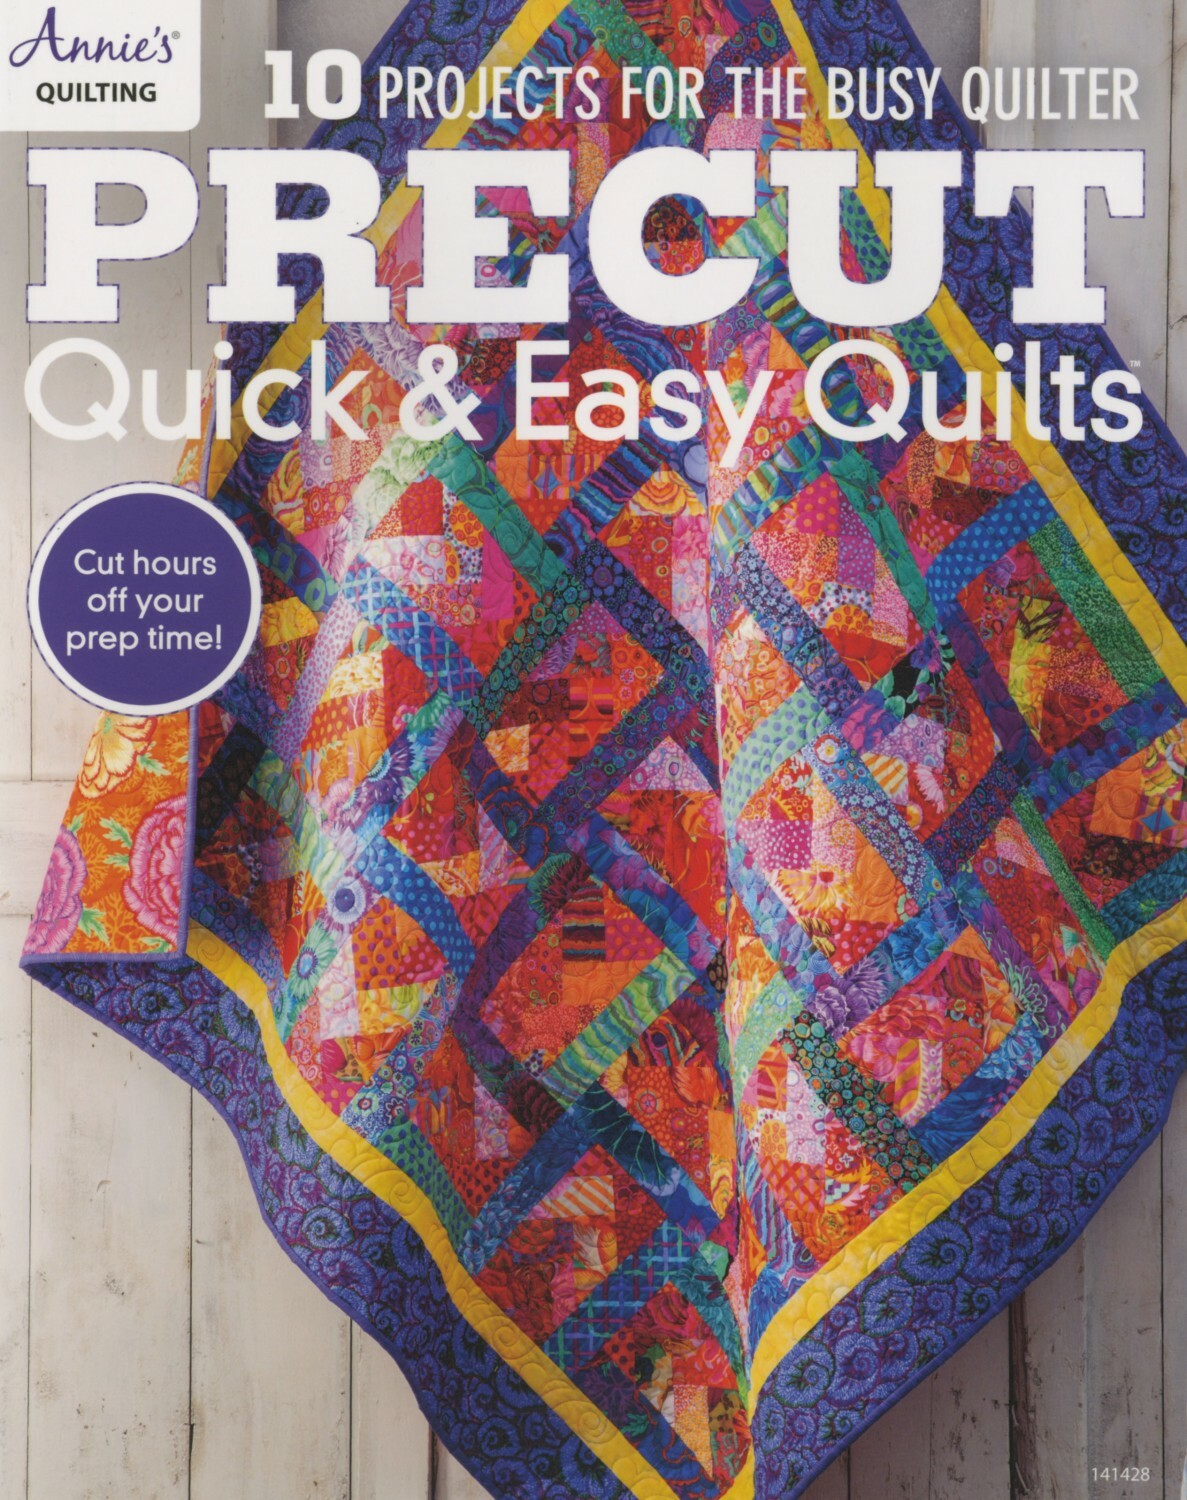 Precut - Quick and Easy Quilts 56867